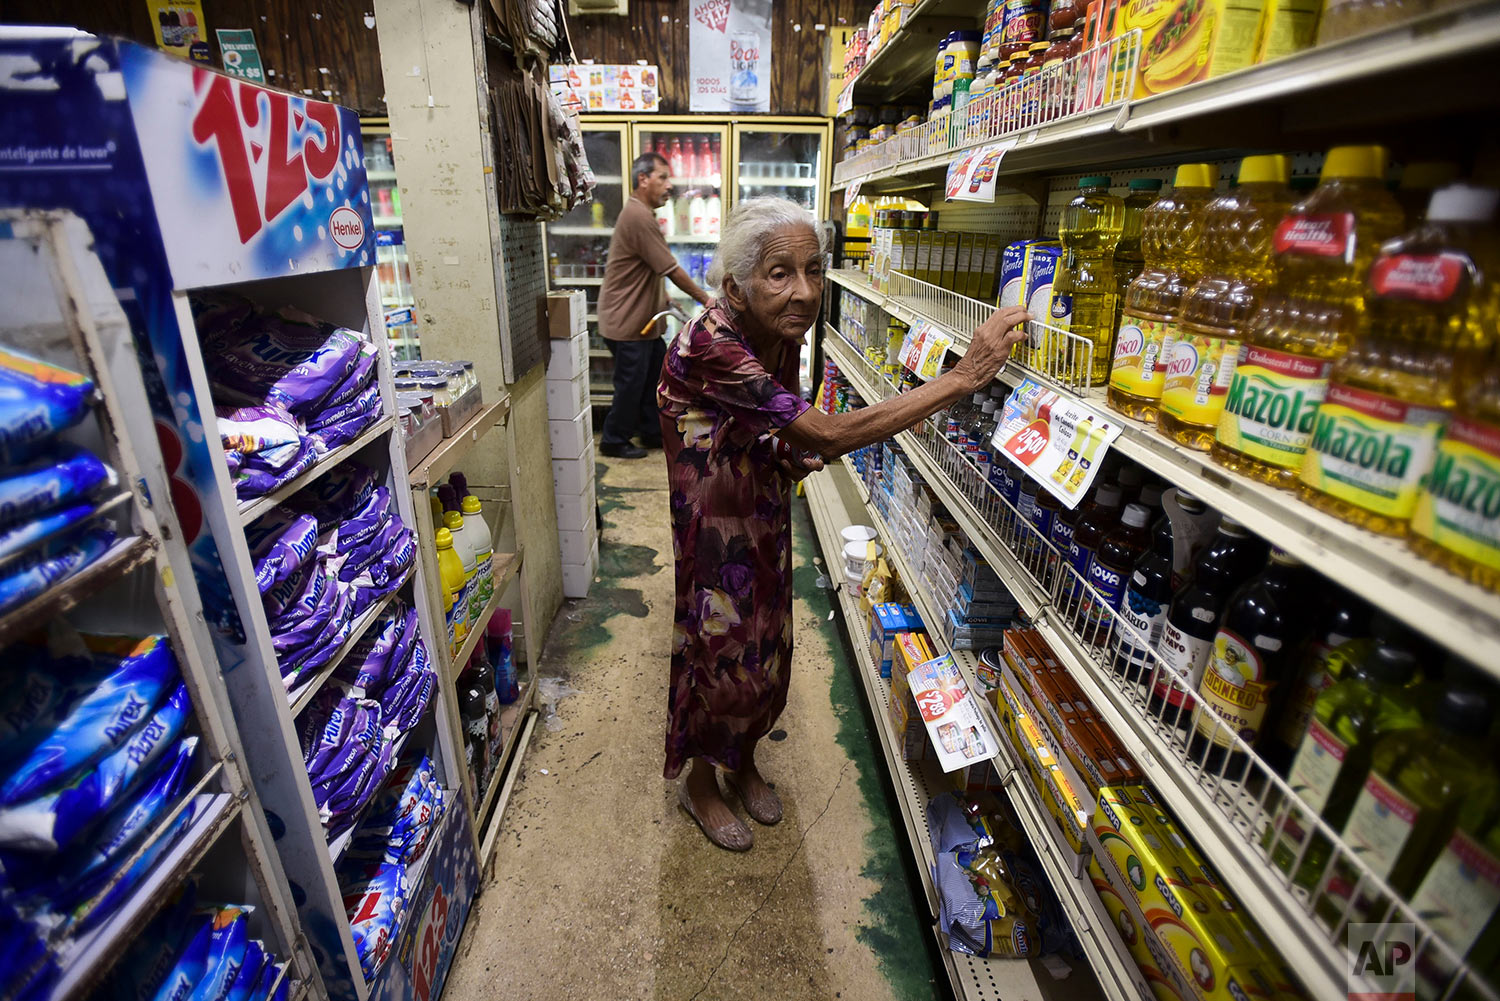 Residents from Juana Matos look for groceries at Catano Mini Market in the middle of a supply shortage caused by the passage of Hurricane Maria in Catano, Puerto Rico, Wednesday, Sept. 27, 2017. Since the devastating impact of the hurricane, the supply of goods has been interrupted in the US territory, causing endless lines in gas stations and comercial centers. (AP Photo/Carlos Giusti)